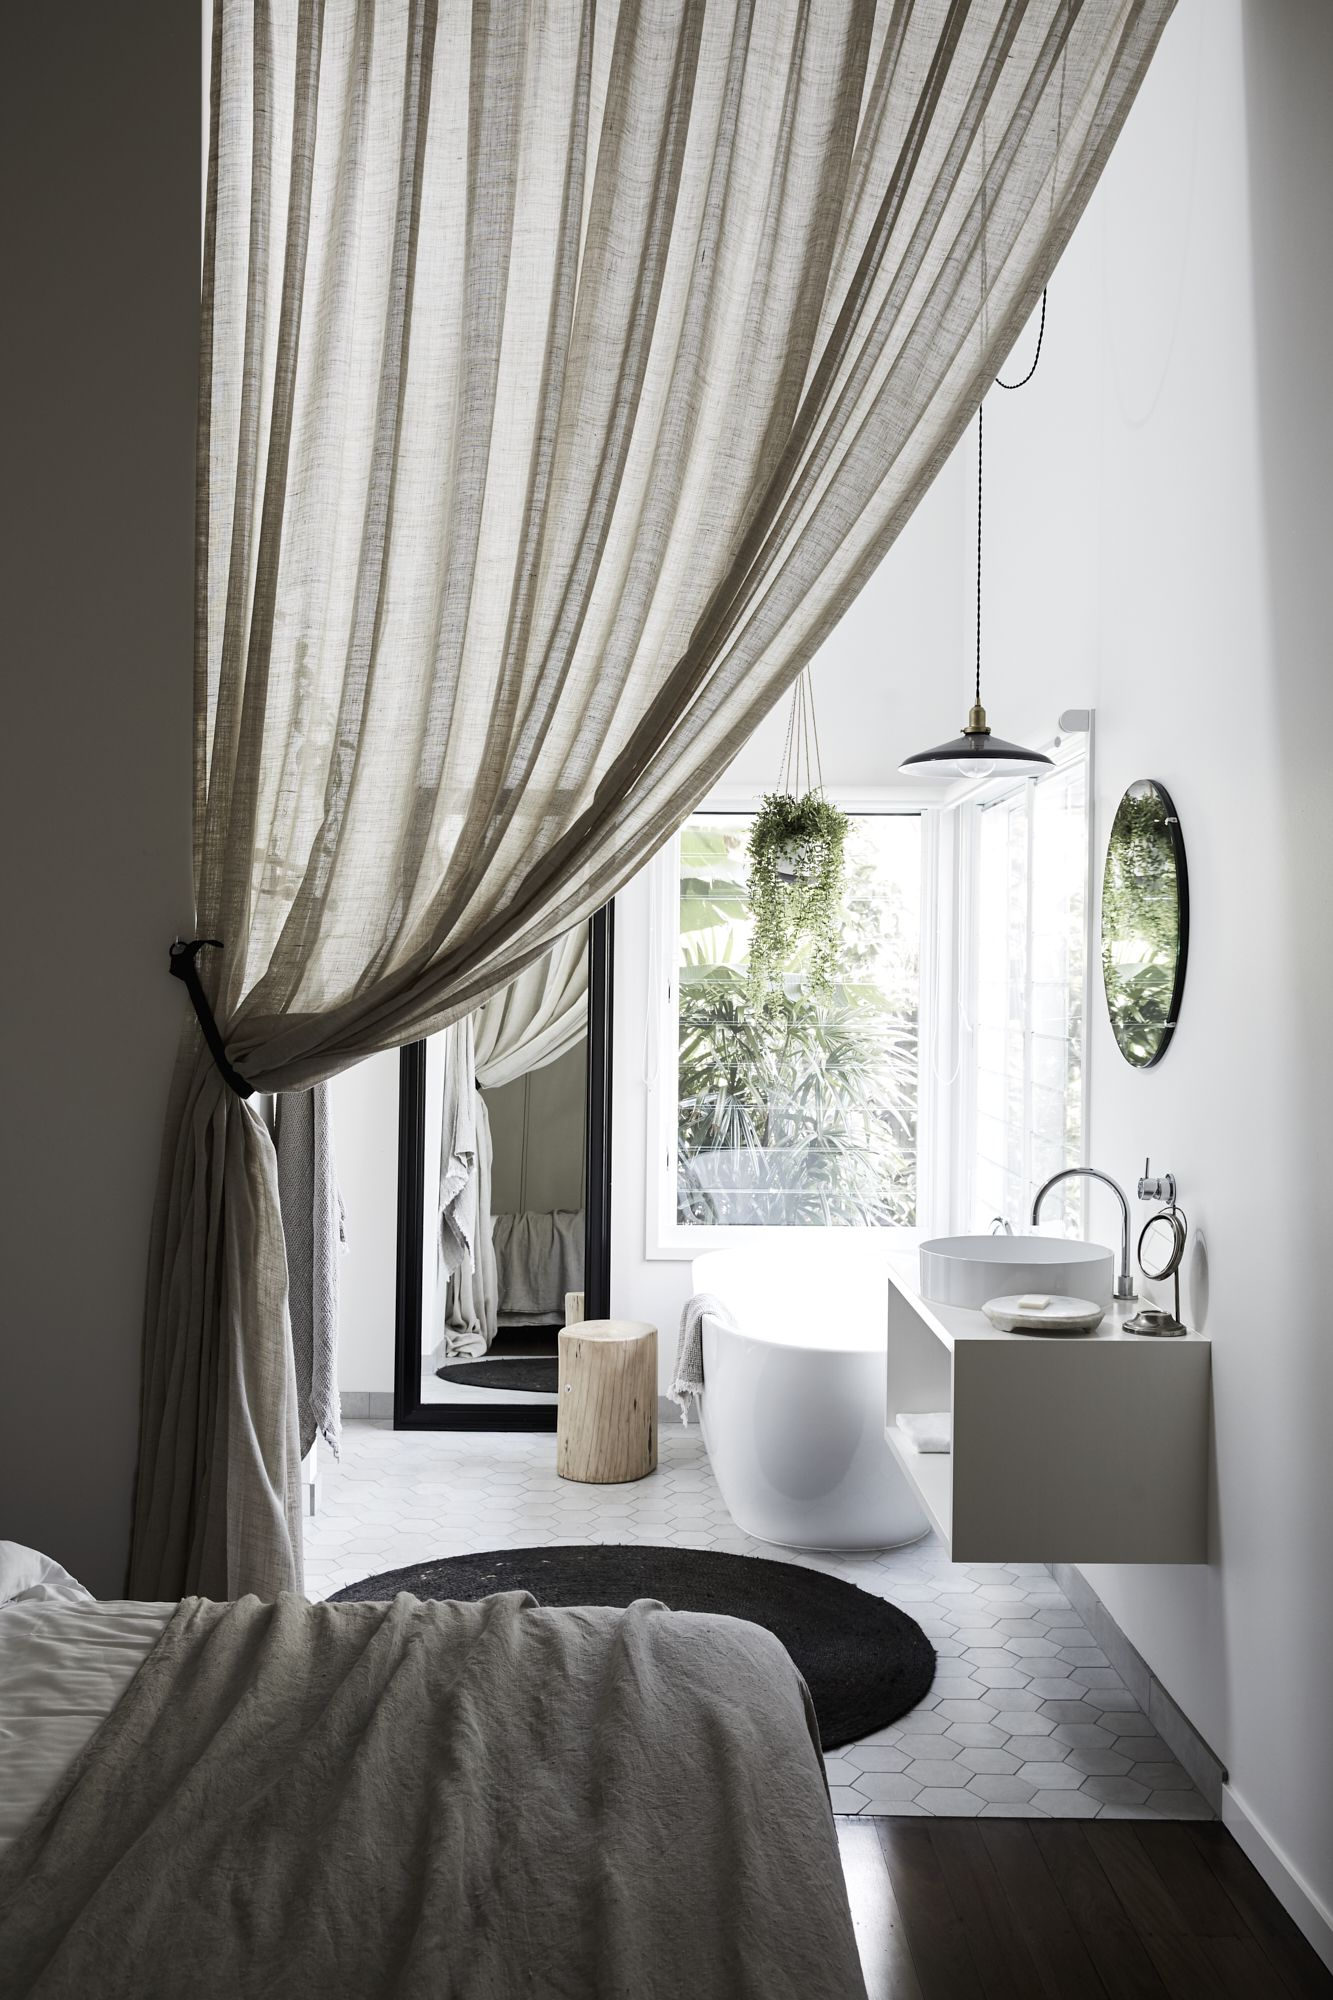 Window behind bed ideas  the chalet  byron beach abodes  home  pinterest  beach house